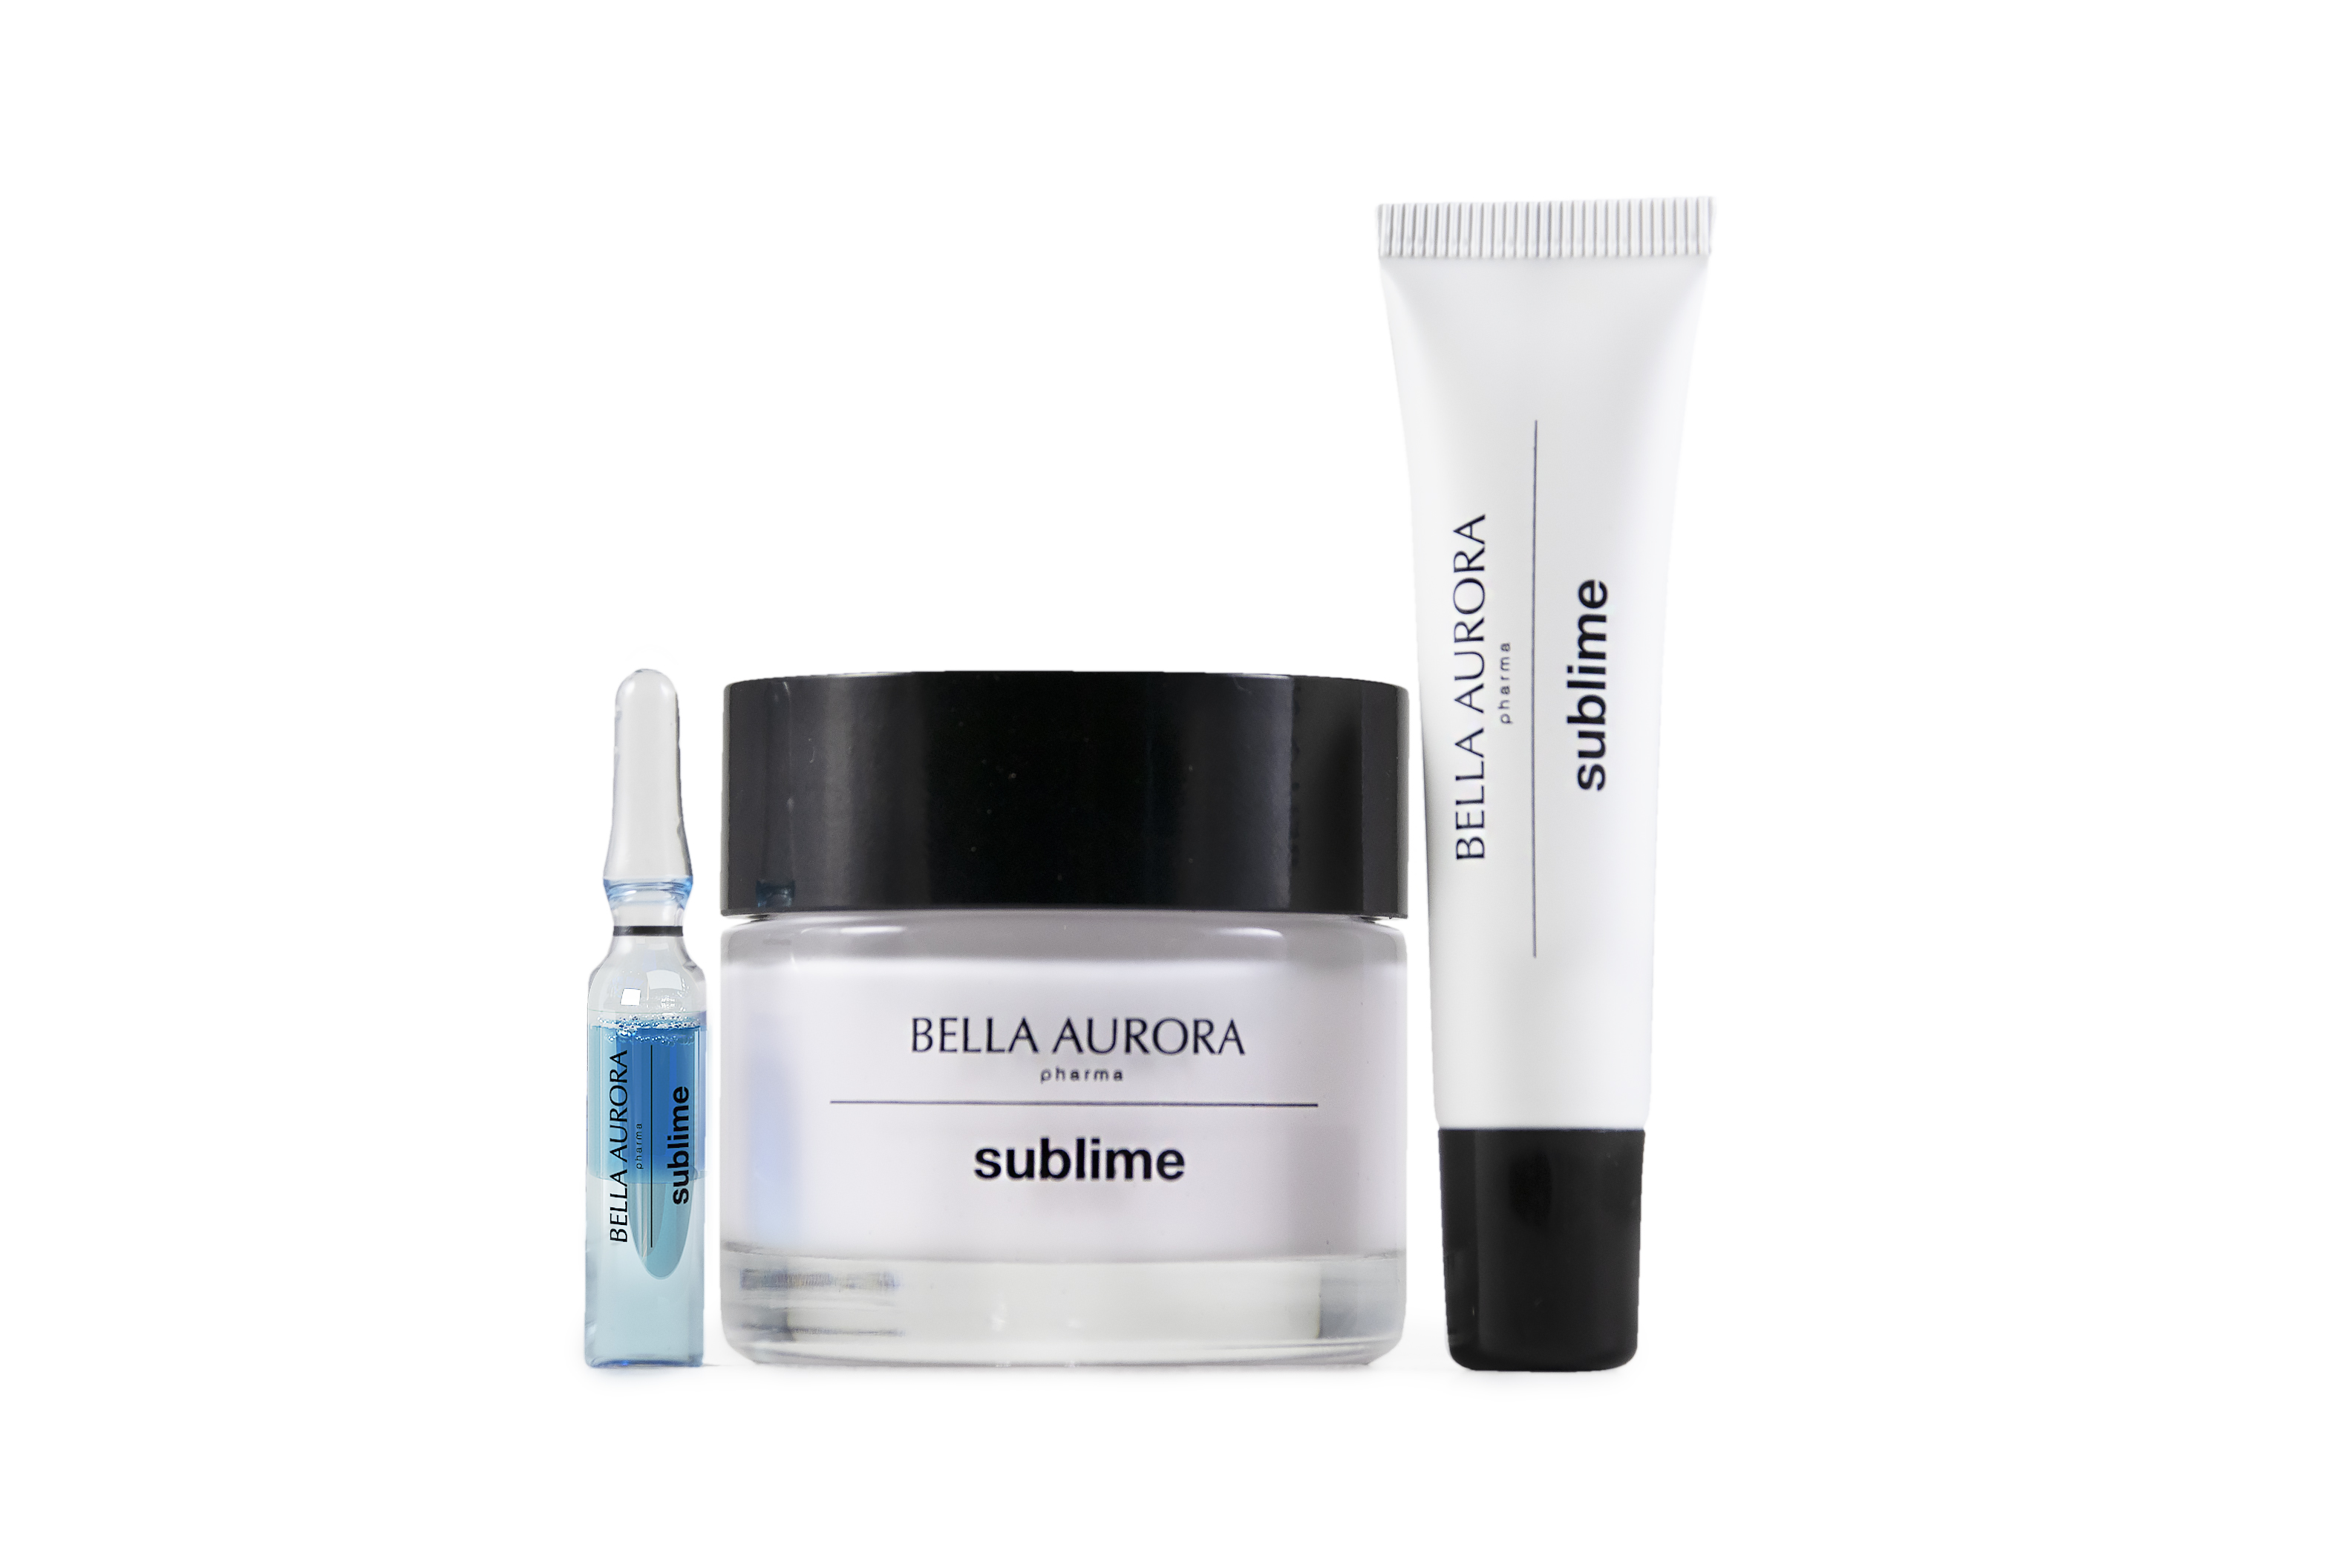 Sublime, Bella Aurora's new anti-ageing range, is here